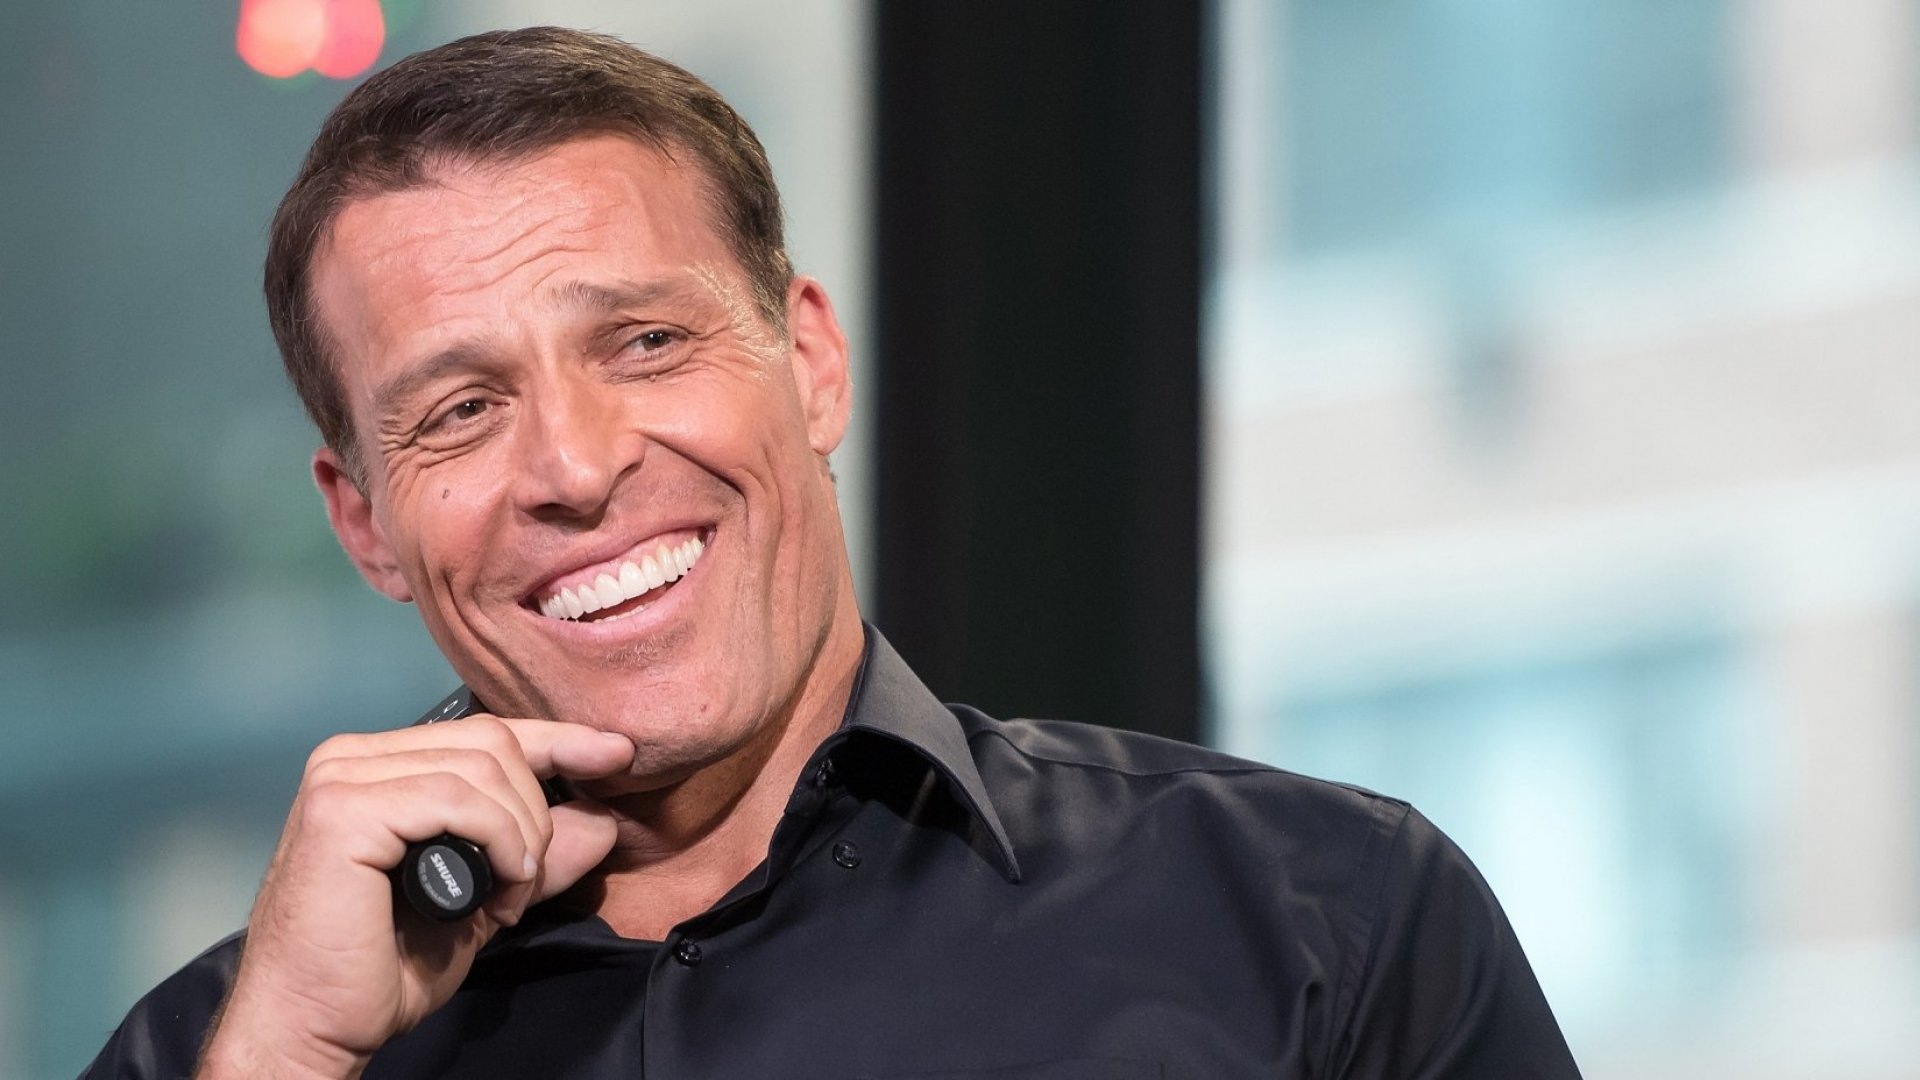 3 Things You Can Learn from Tony Robbins Million Dollar Guarantee